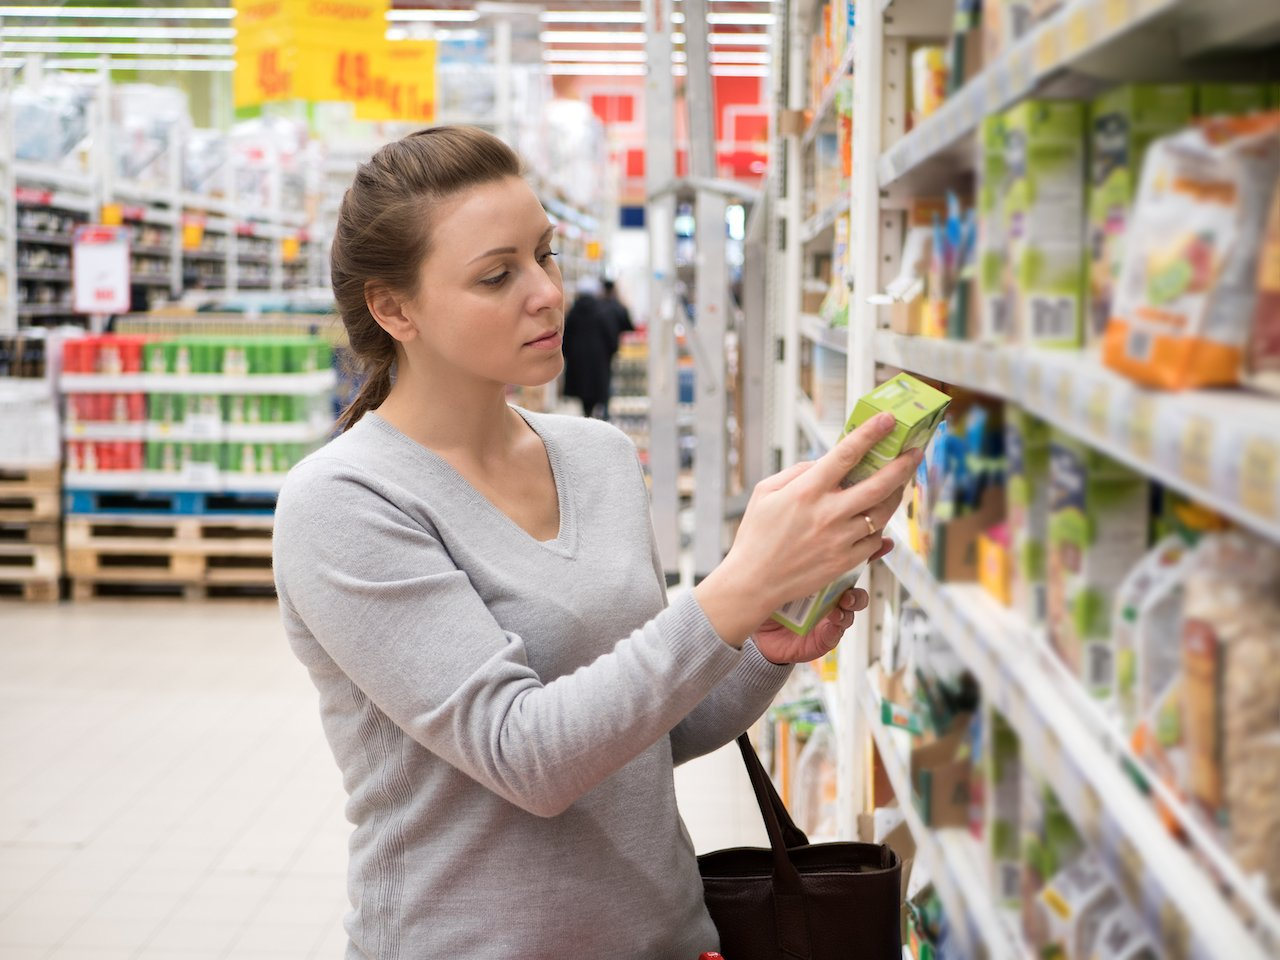 A woman in the food store carefully reading the nutrition label on snack food.